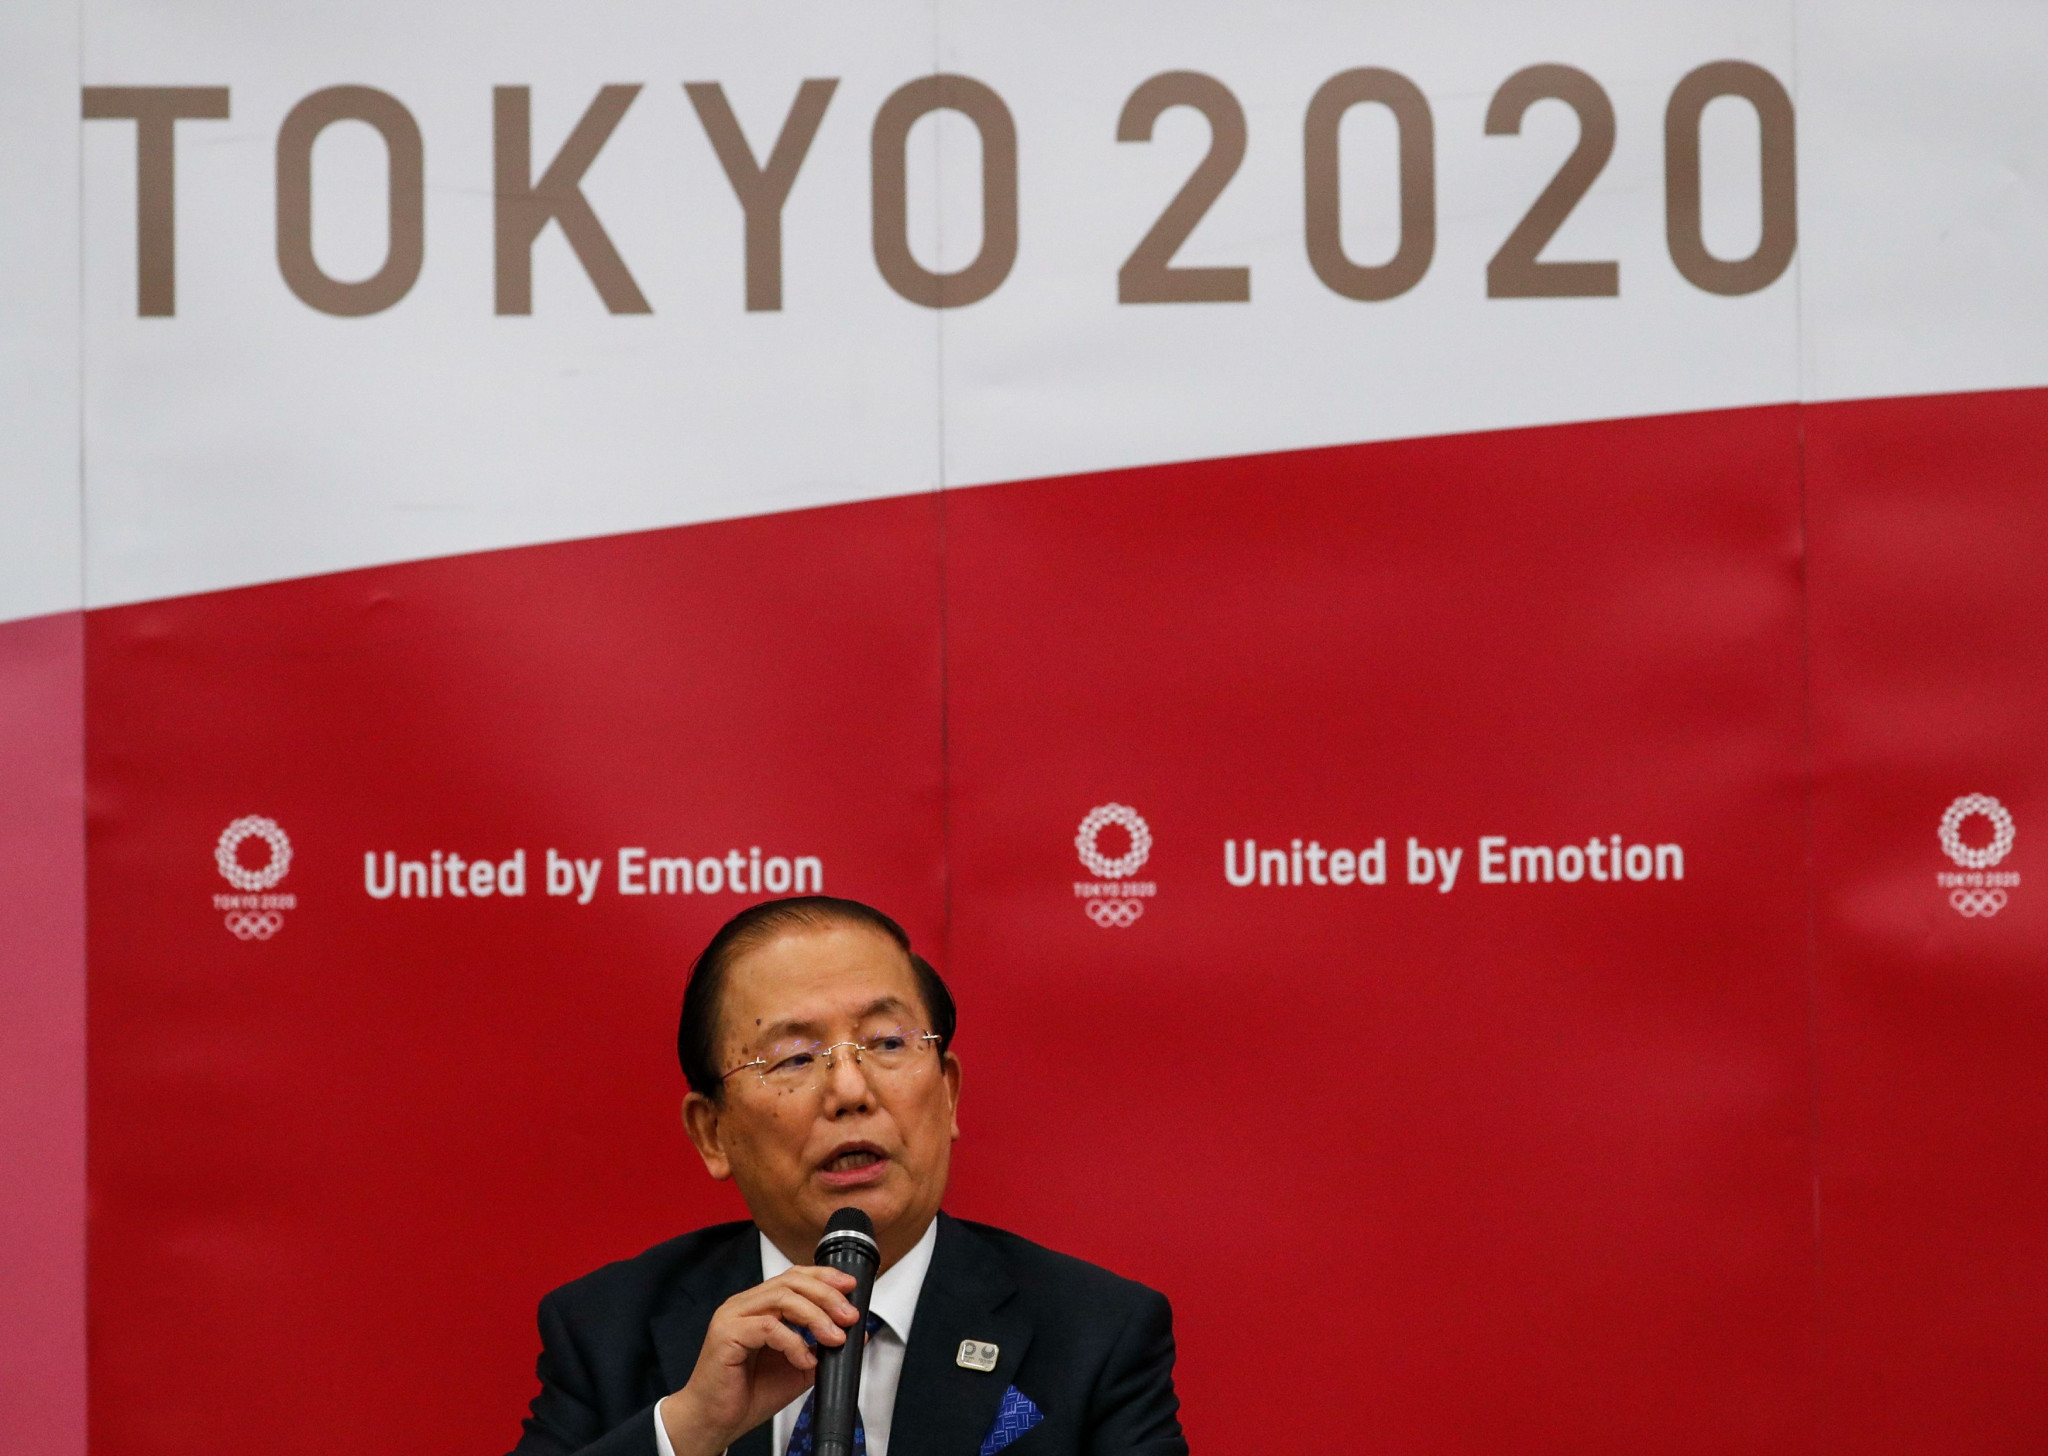 Tokyo 2020 chief executive Toshirō Mutō recently offered an update on organisers' progress ©Getty Images